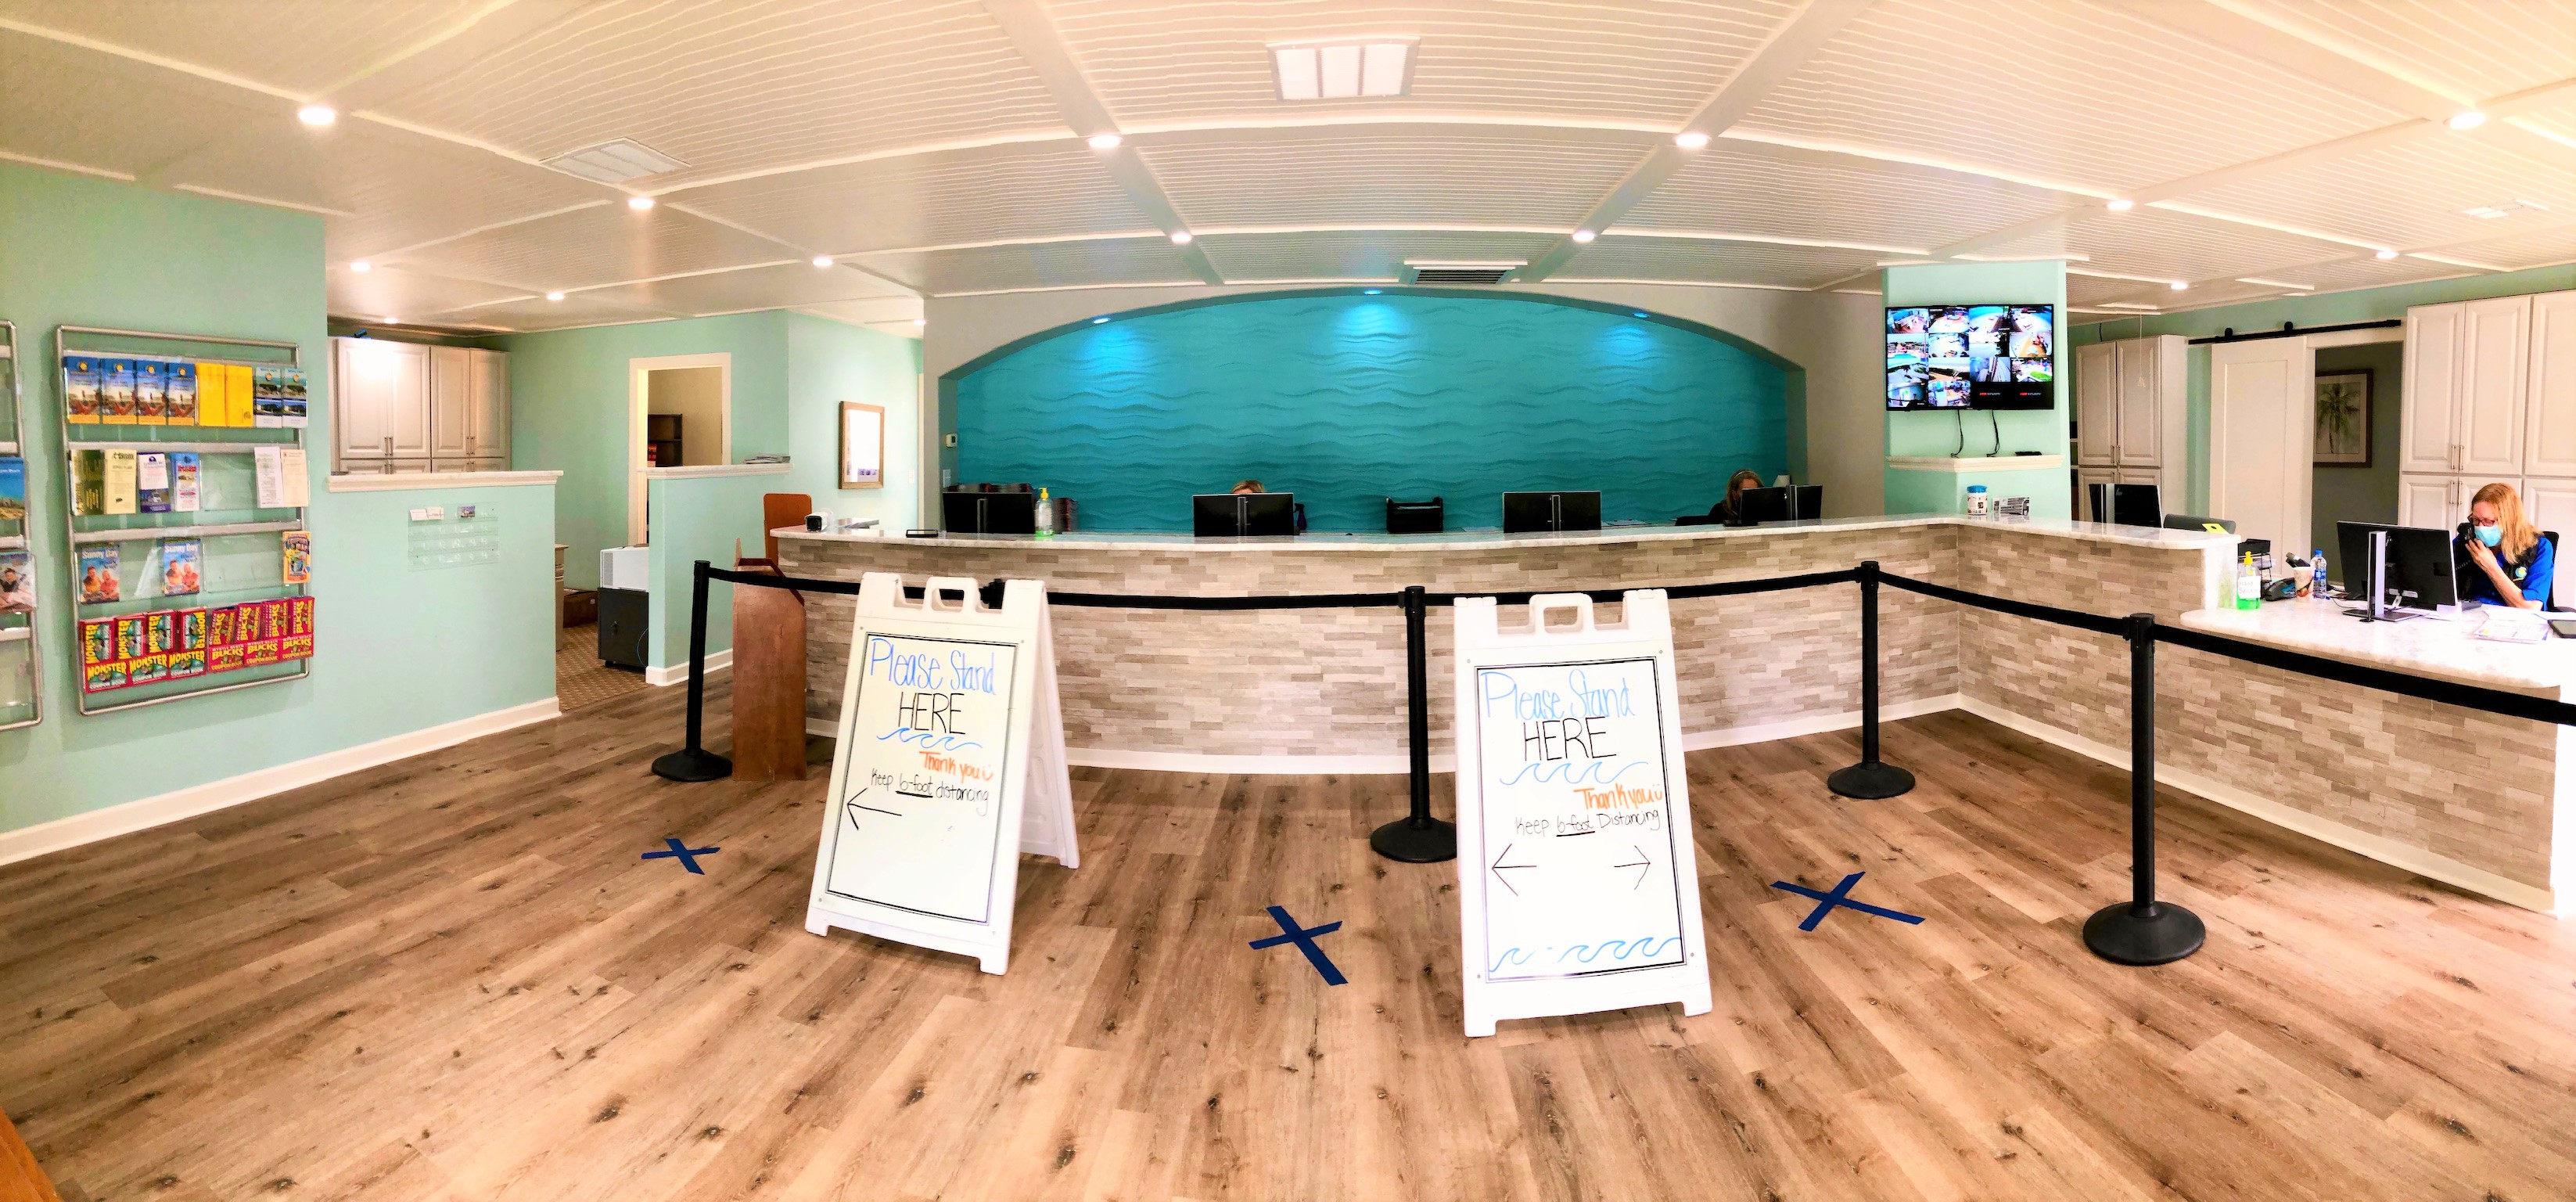 Check our our newly renovated Front Office!